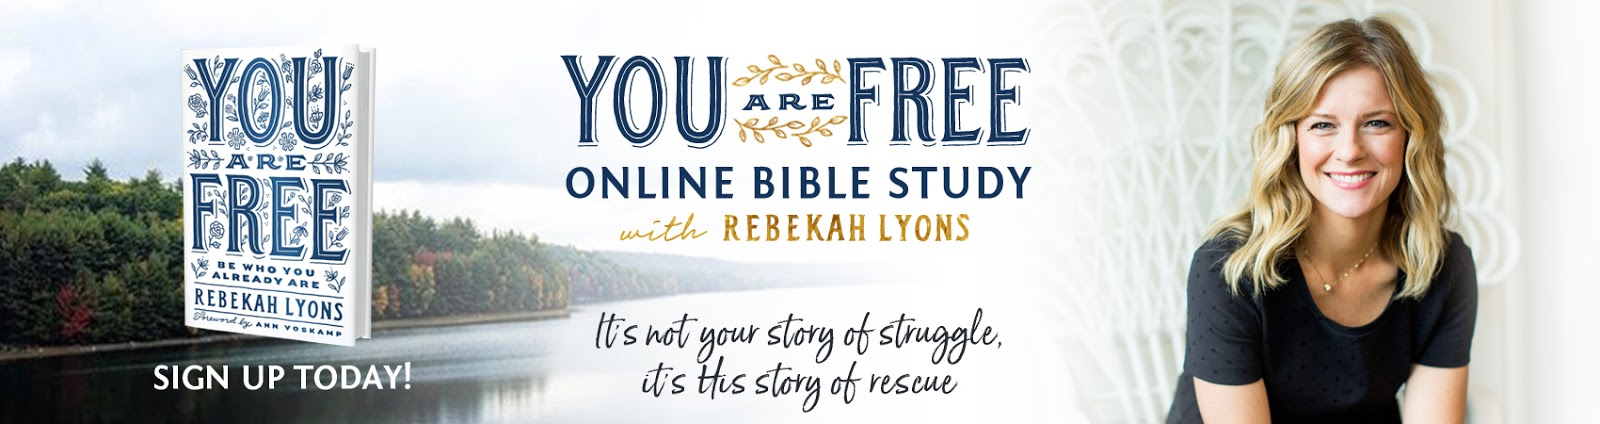 The Blonde Blogger: You Are Free by Rebekah Lyons Free